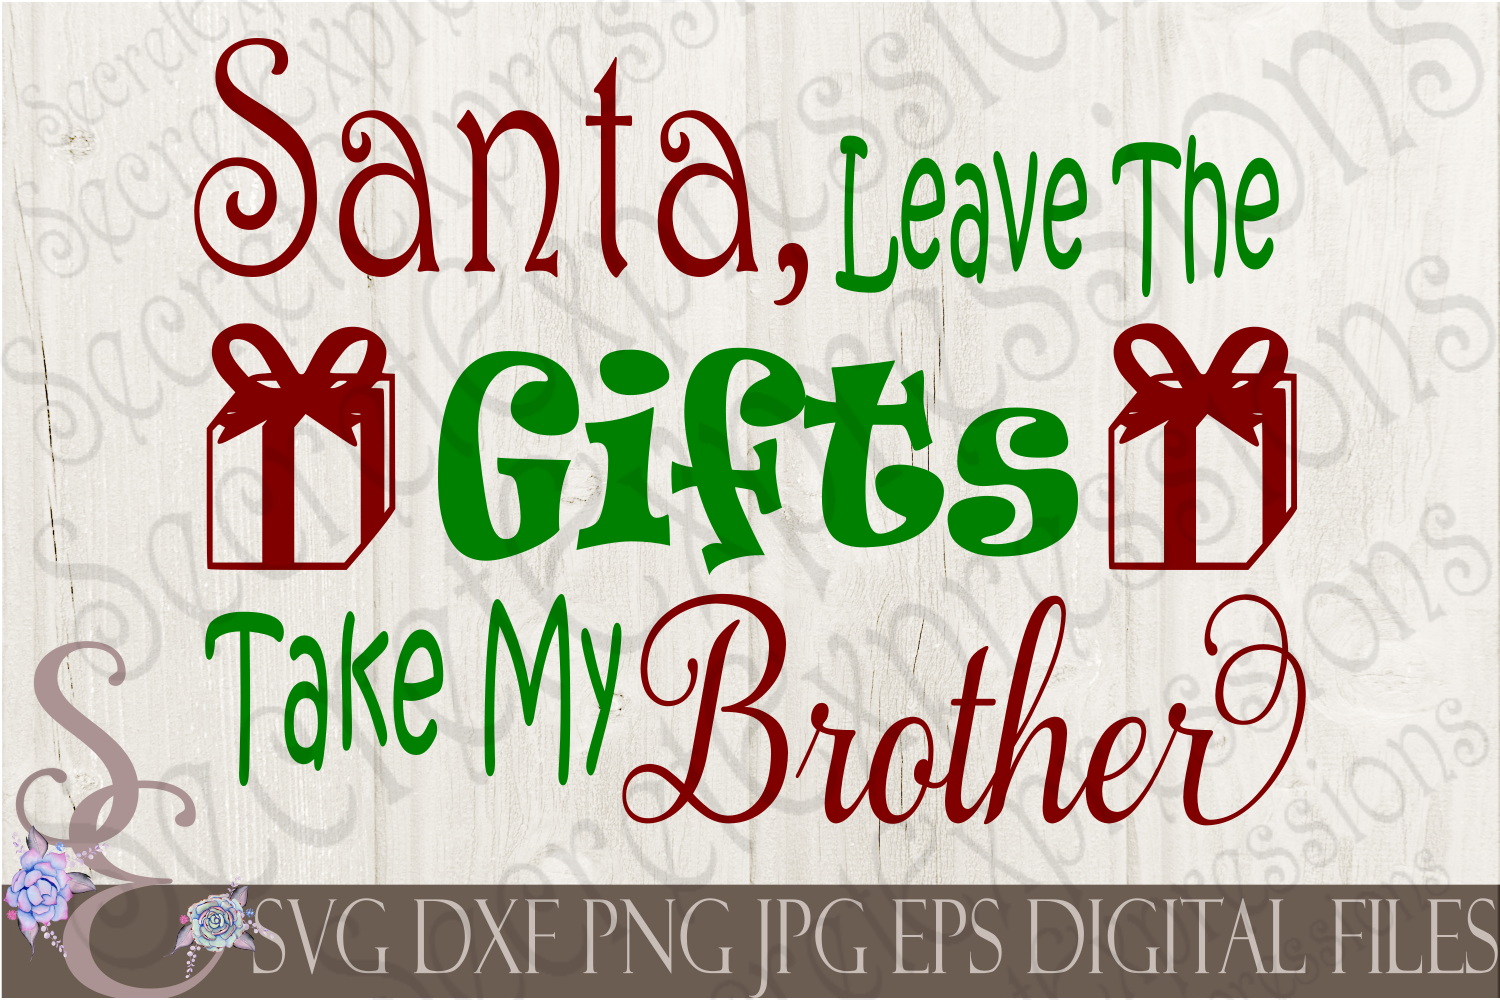 Kid Christmas SVG Bundle 9 Designs example image 9